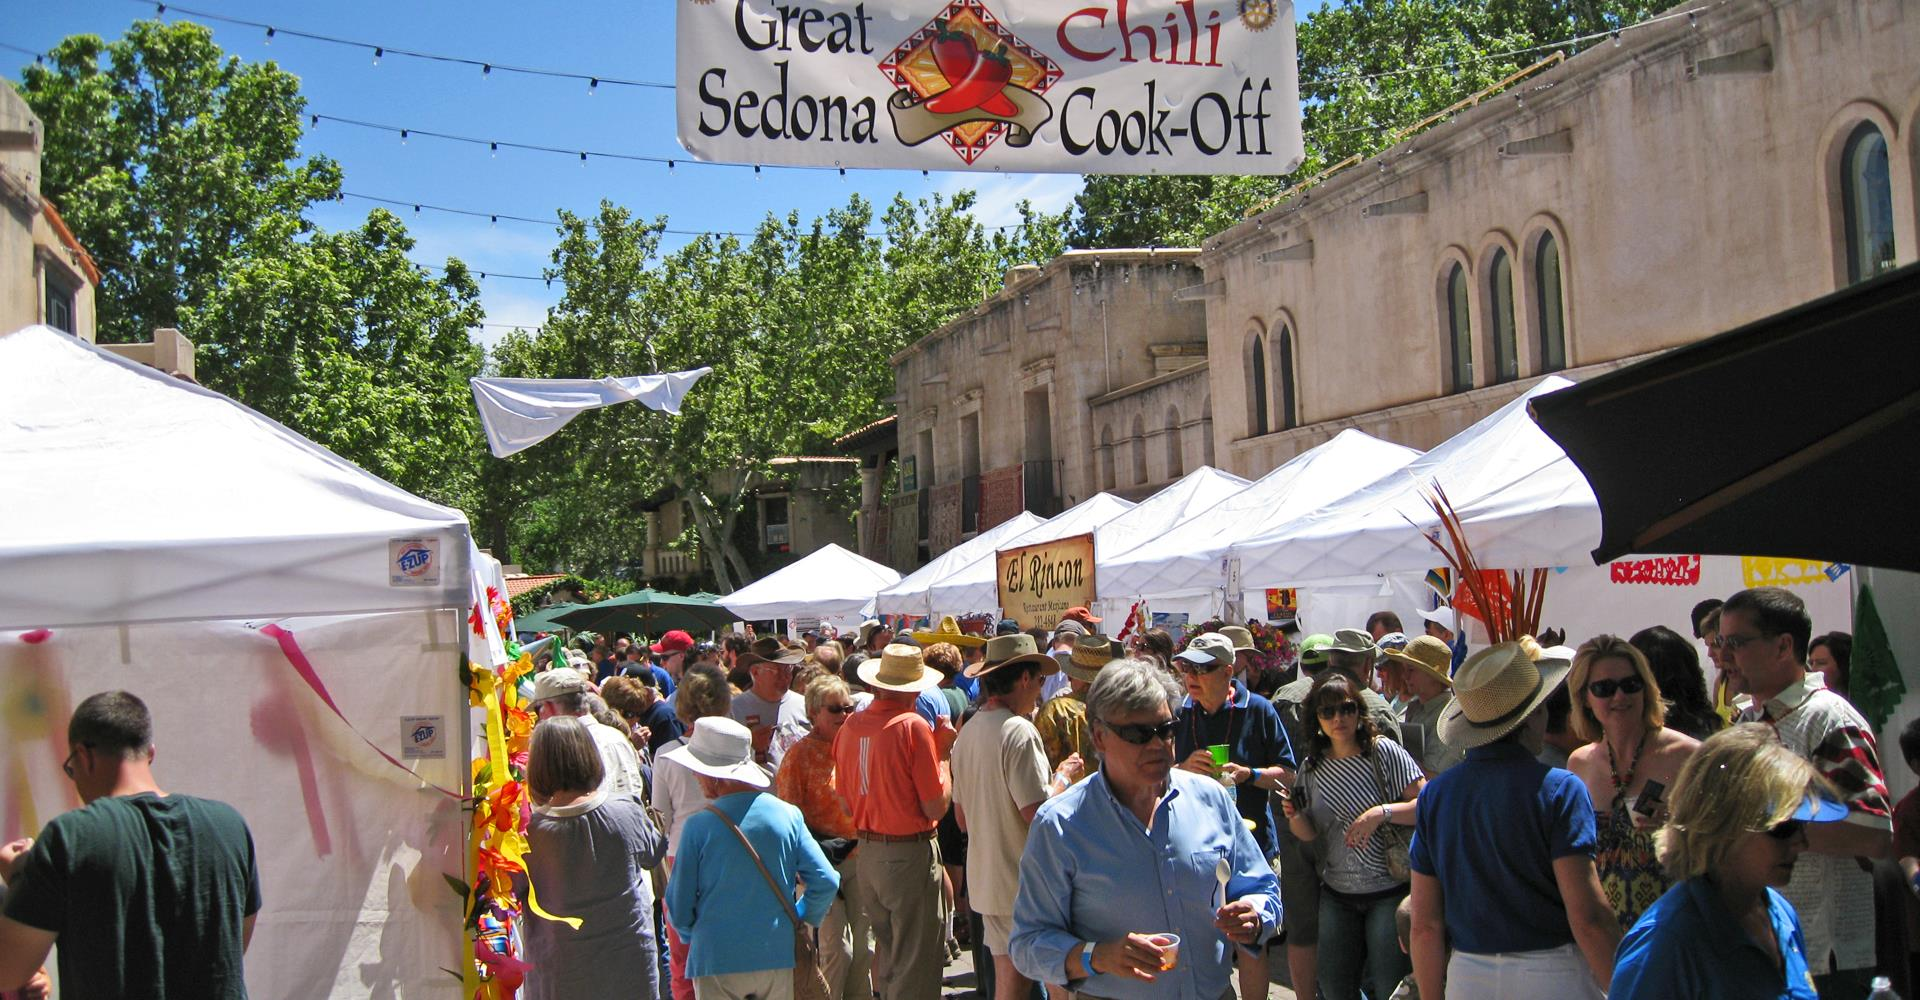 The Great Sedona Chili Cook-Off